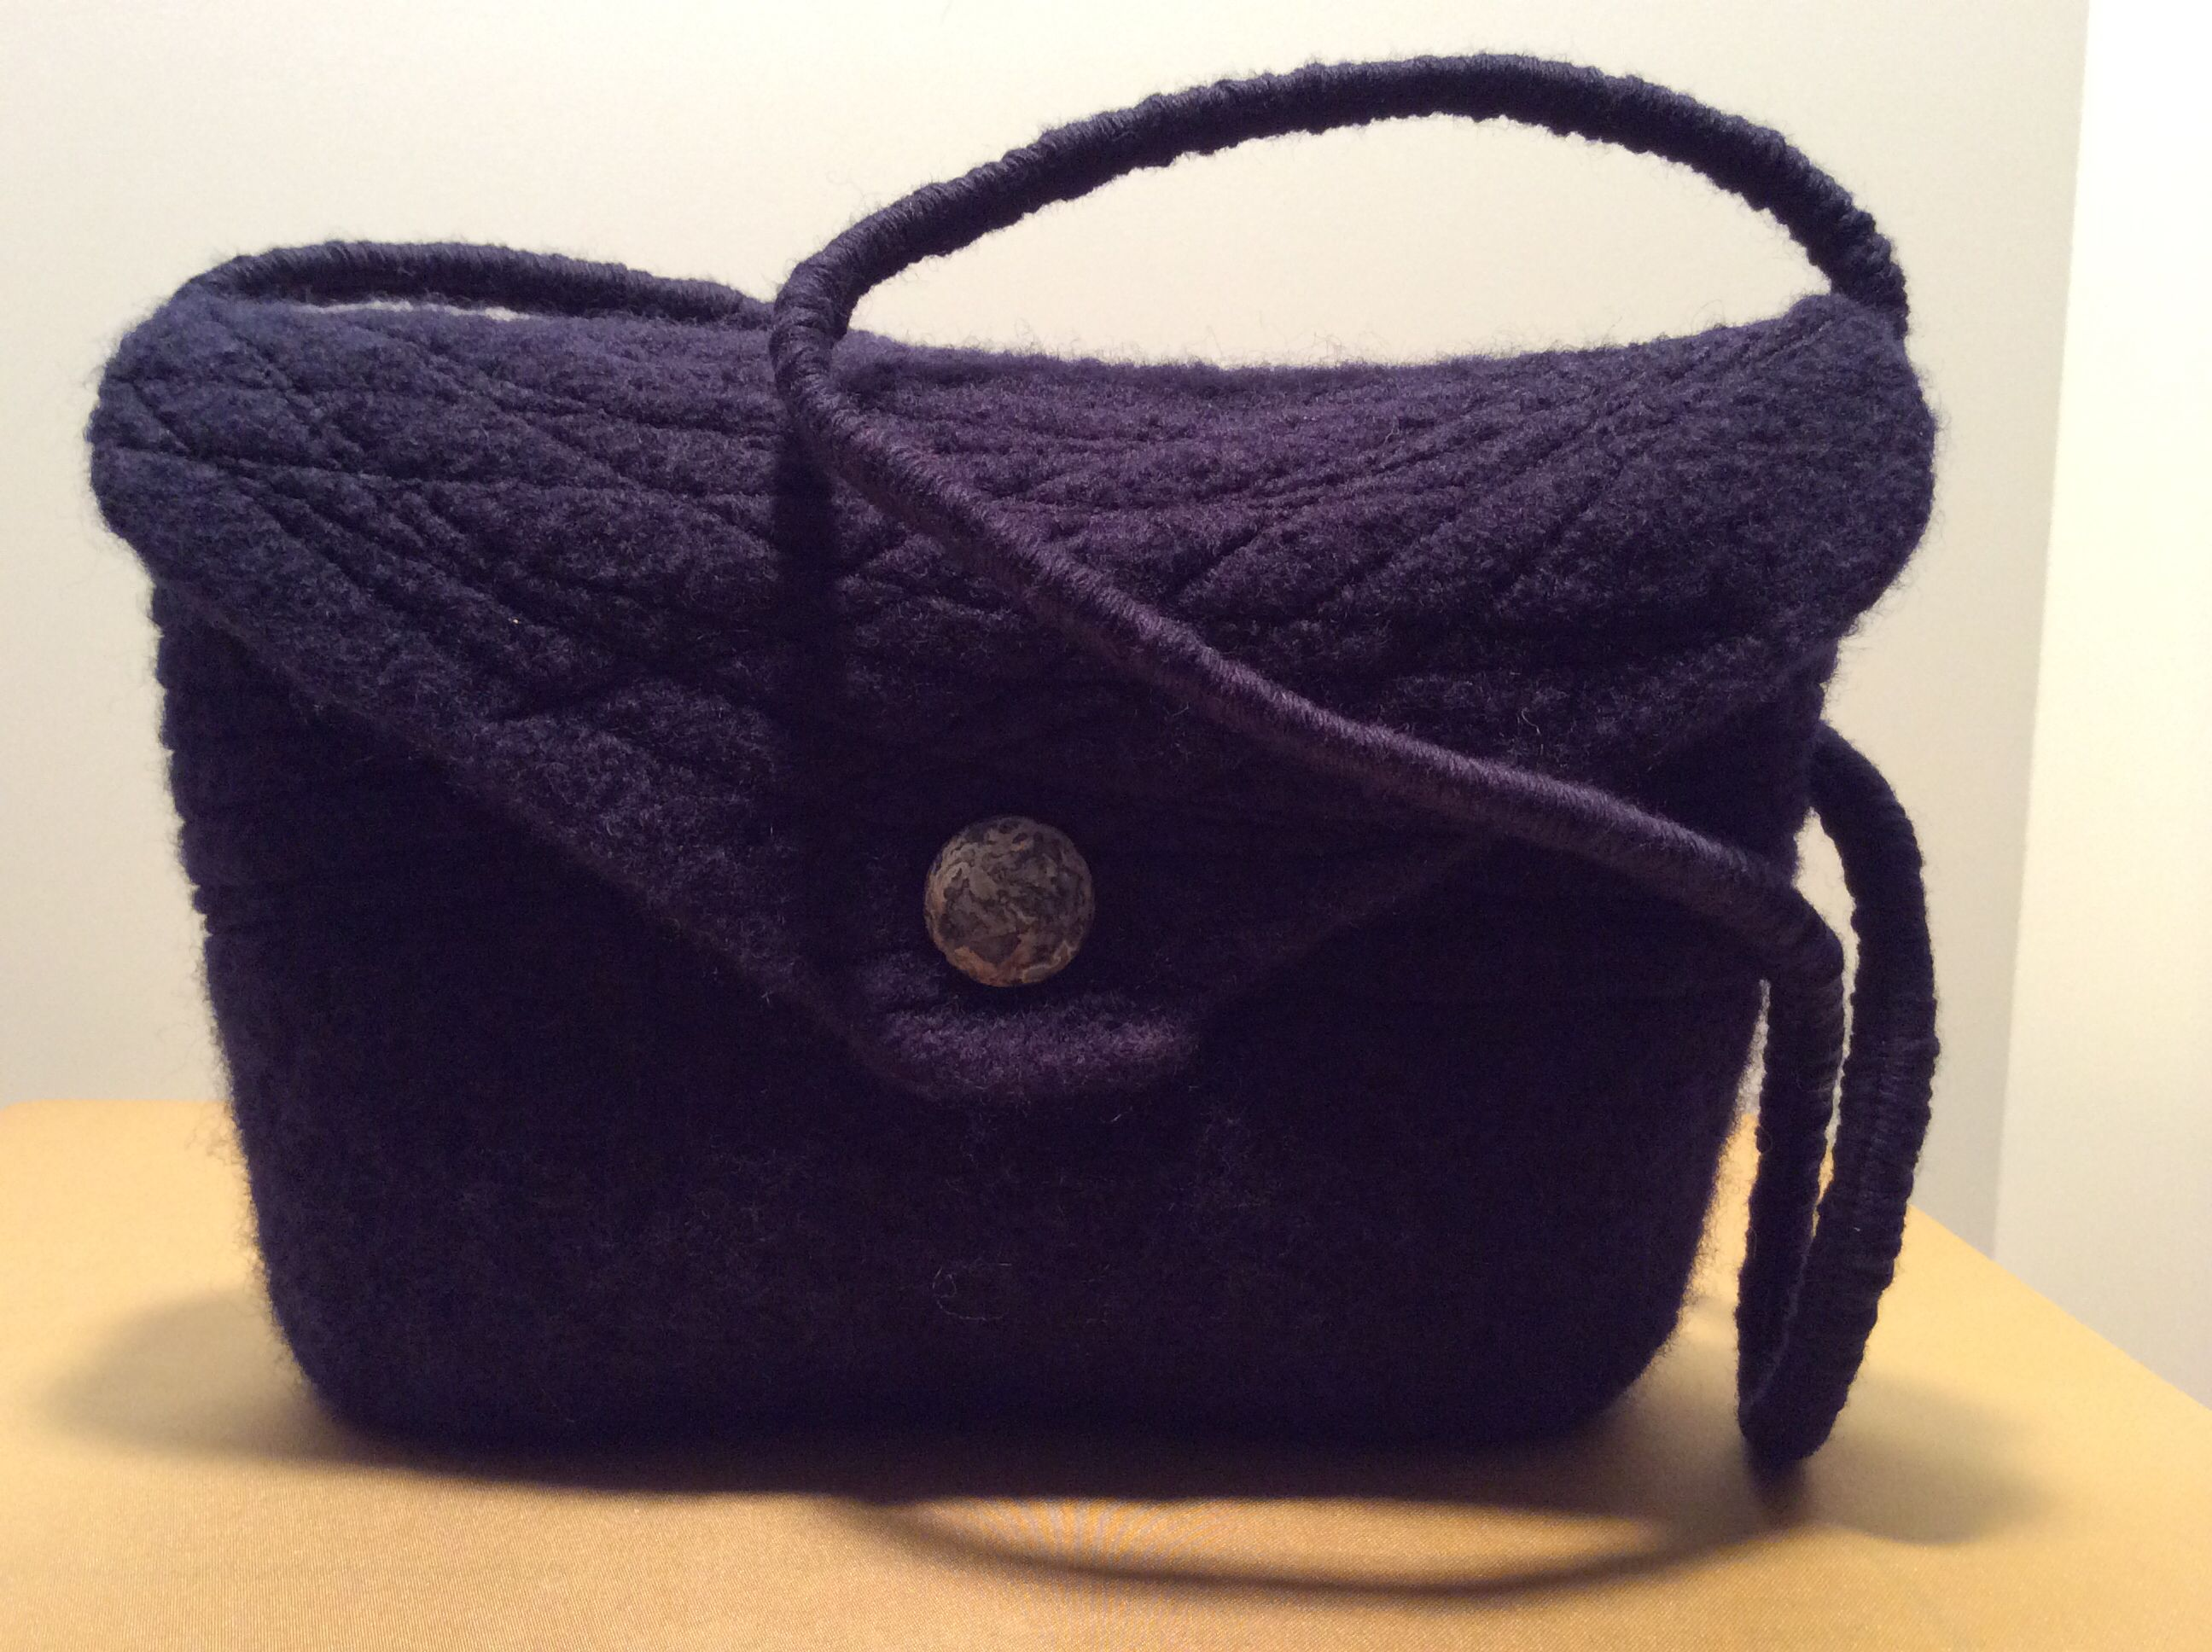 Hand knit and fulled bag by Elaine Haag, 2014.  This handbag features a brocade lining, interior pocket, freestyle stitching, magnetic closure and a denim lapis stone.